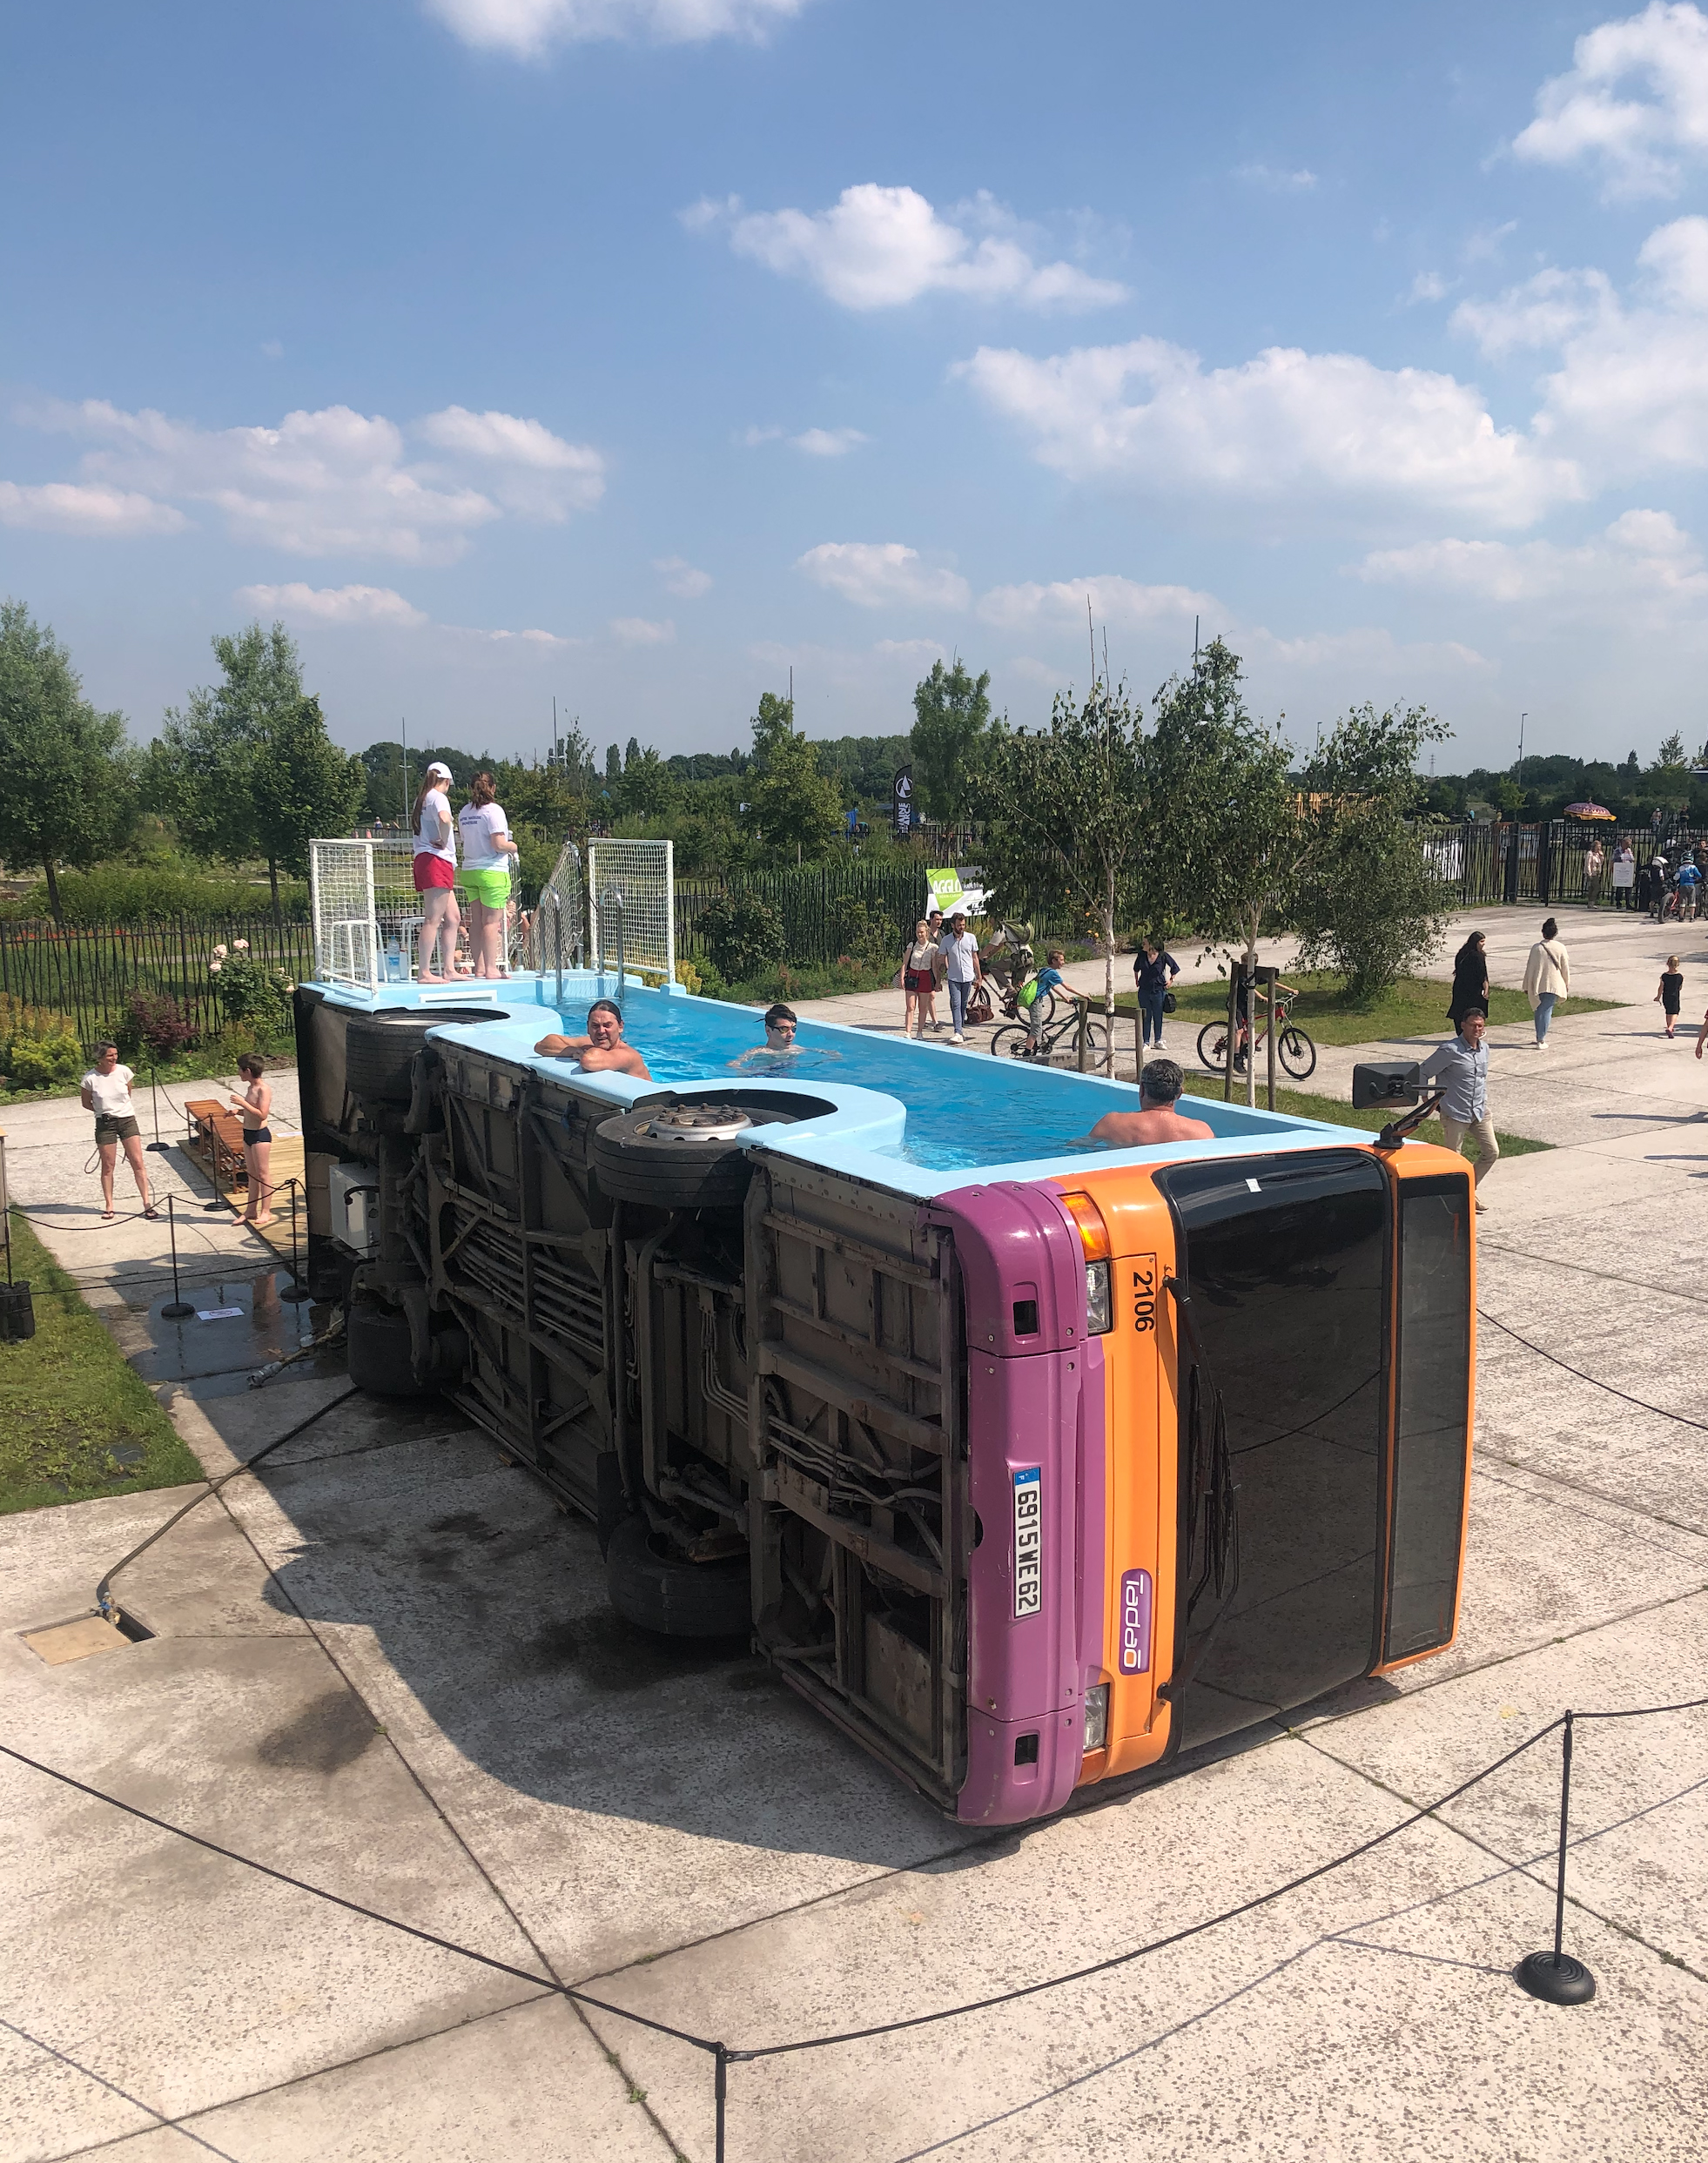 Artist transforms old bus into swimming pool